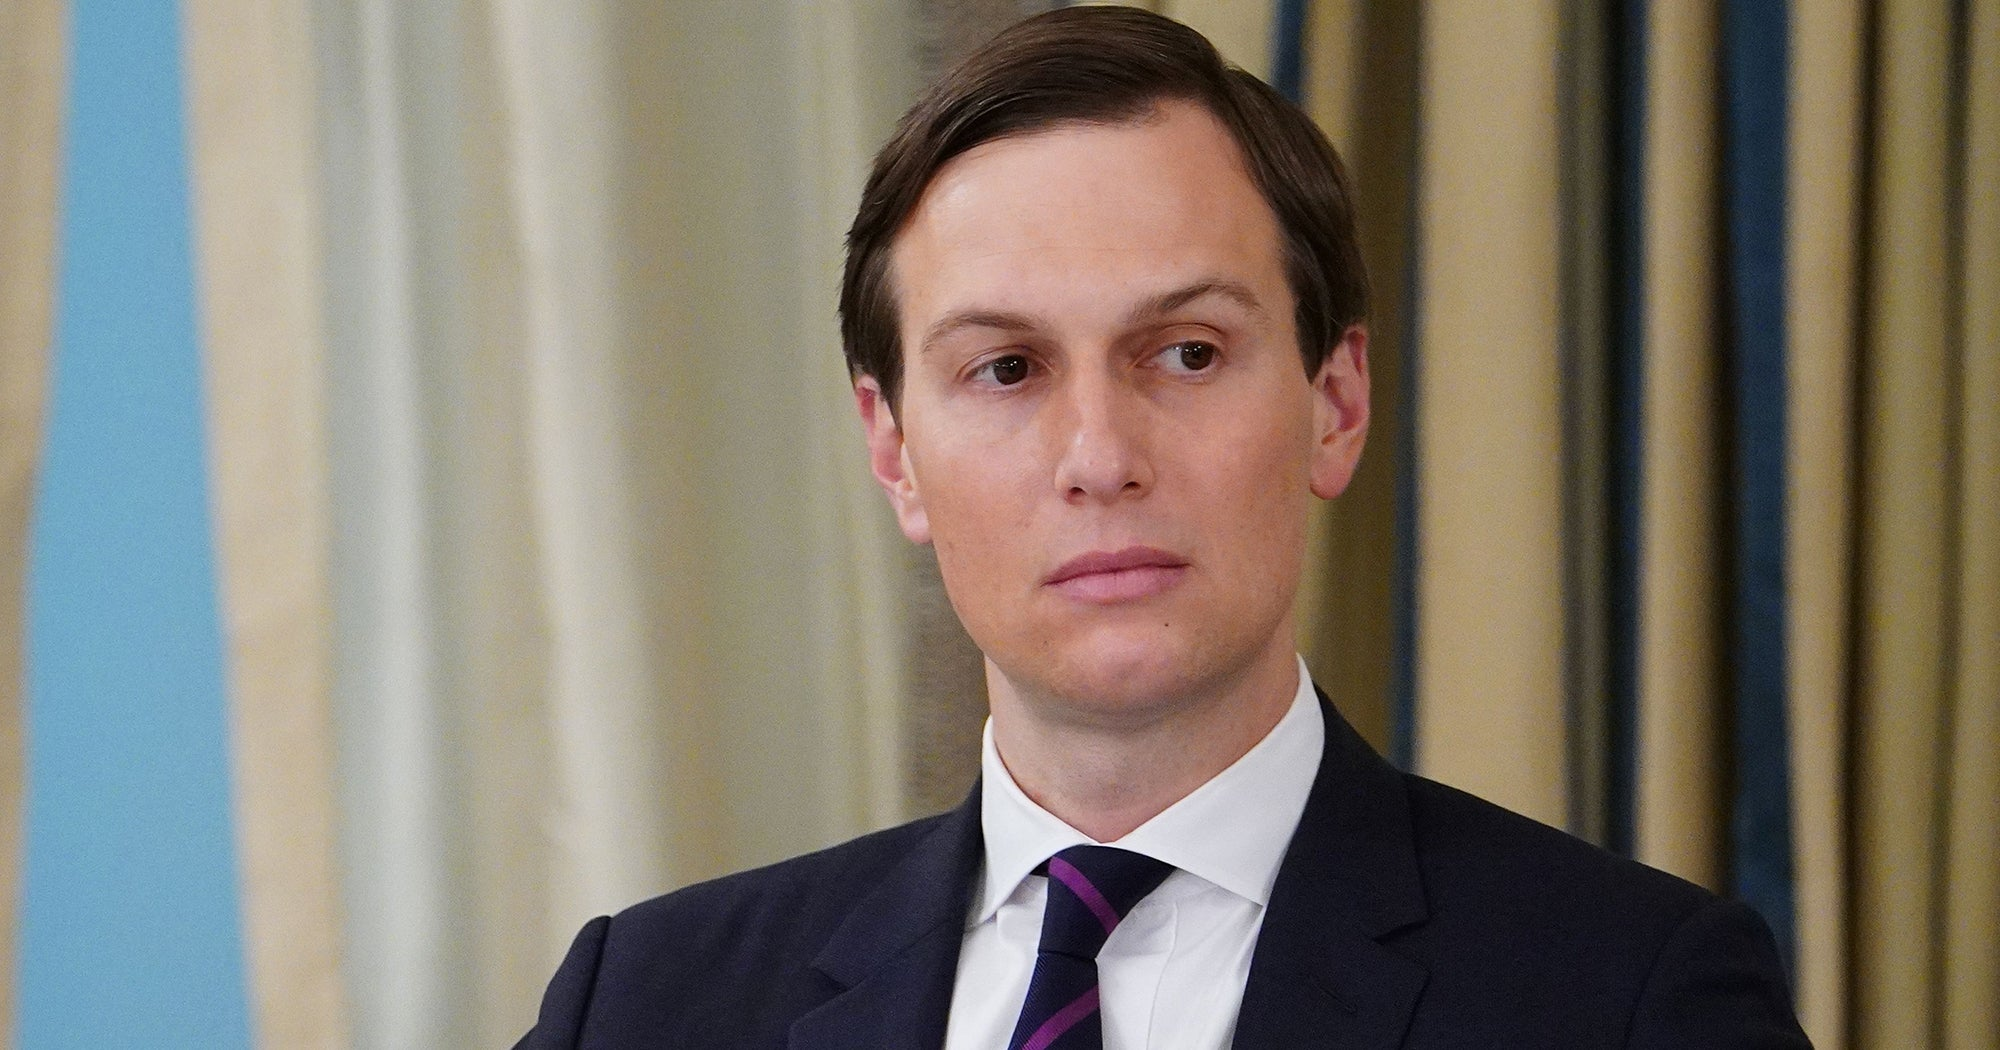 Trump Scrapped Jared Kushner's COVID Plan Because It Wouldn't Help Trump